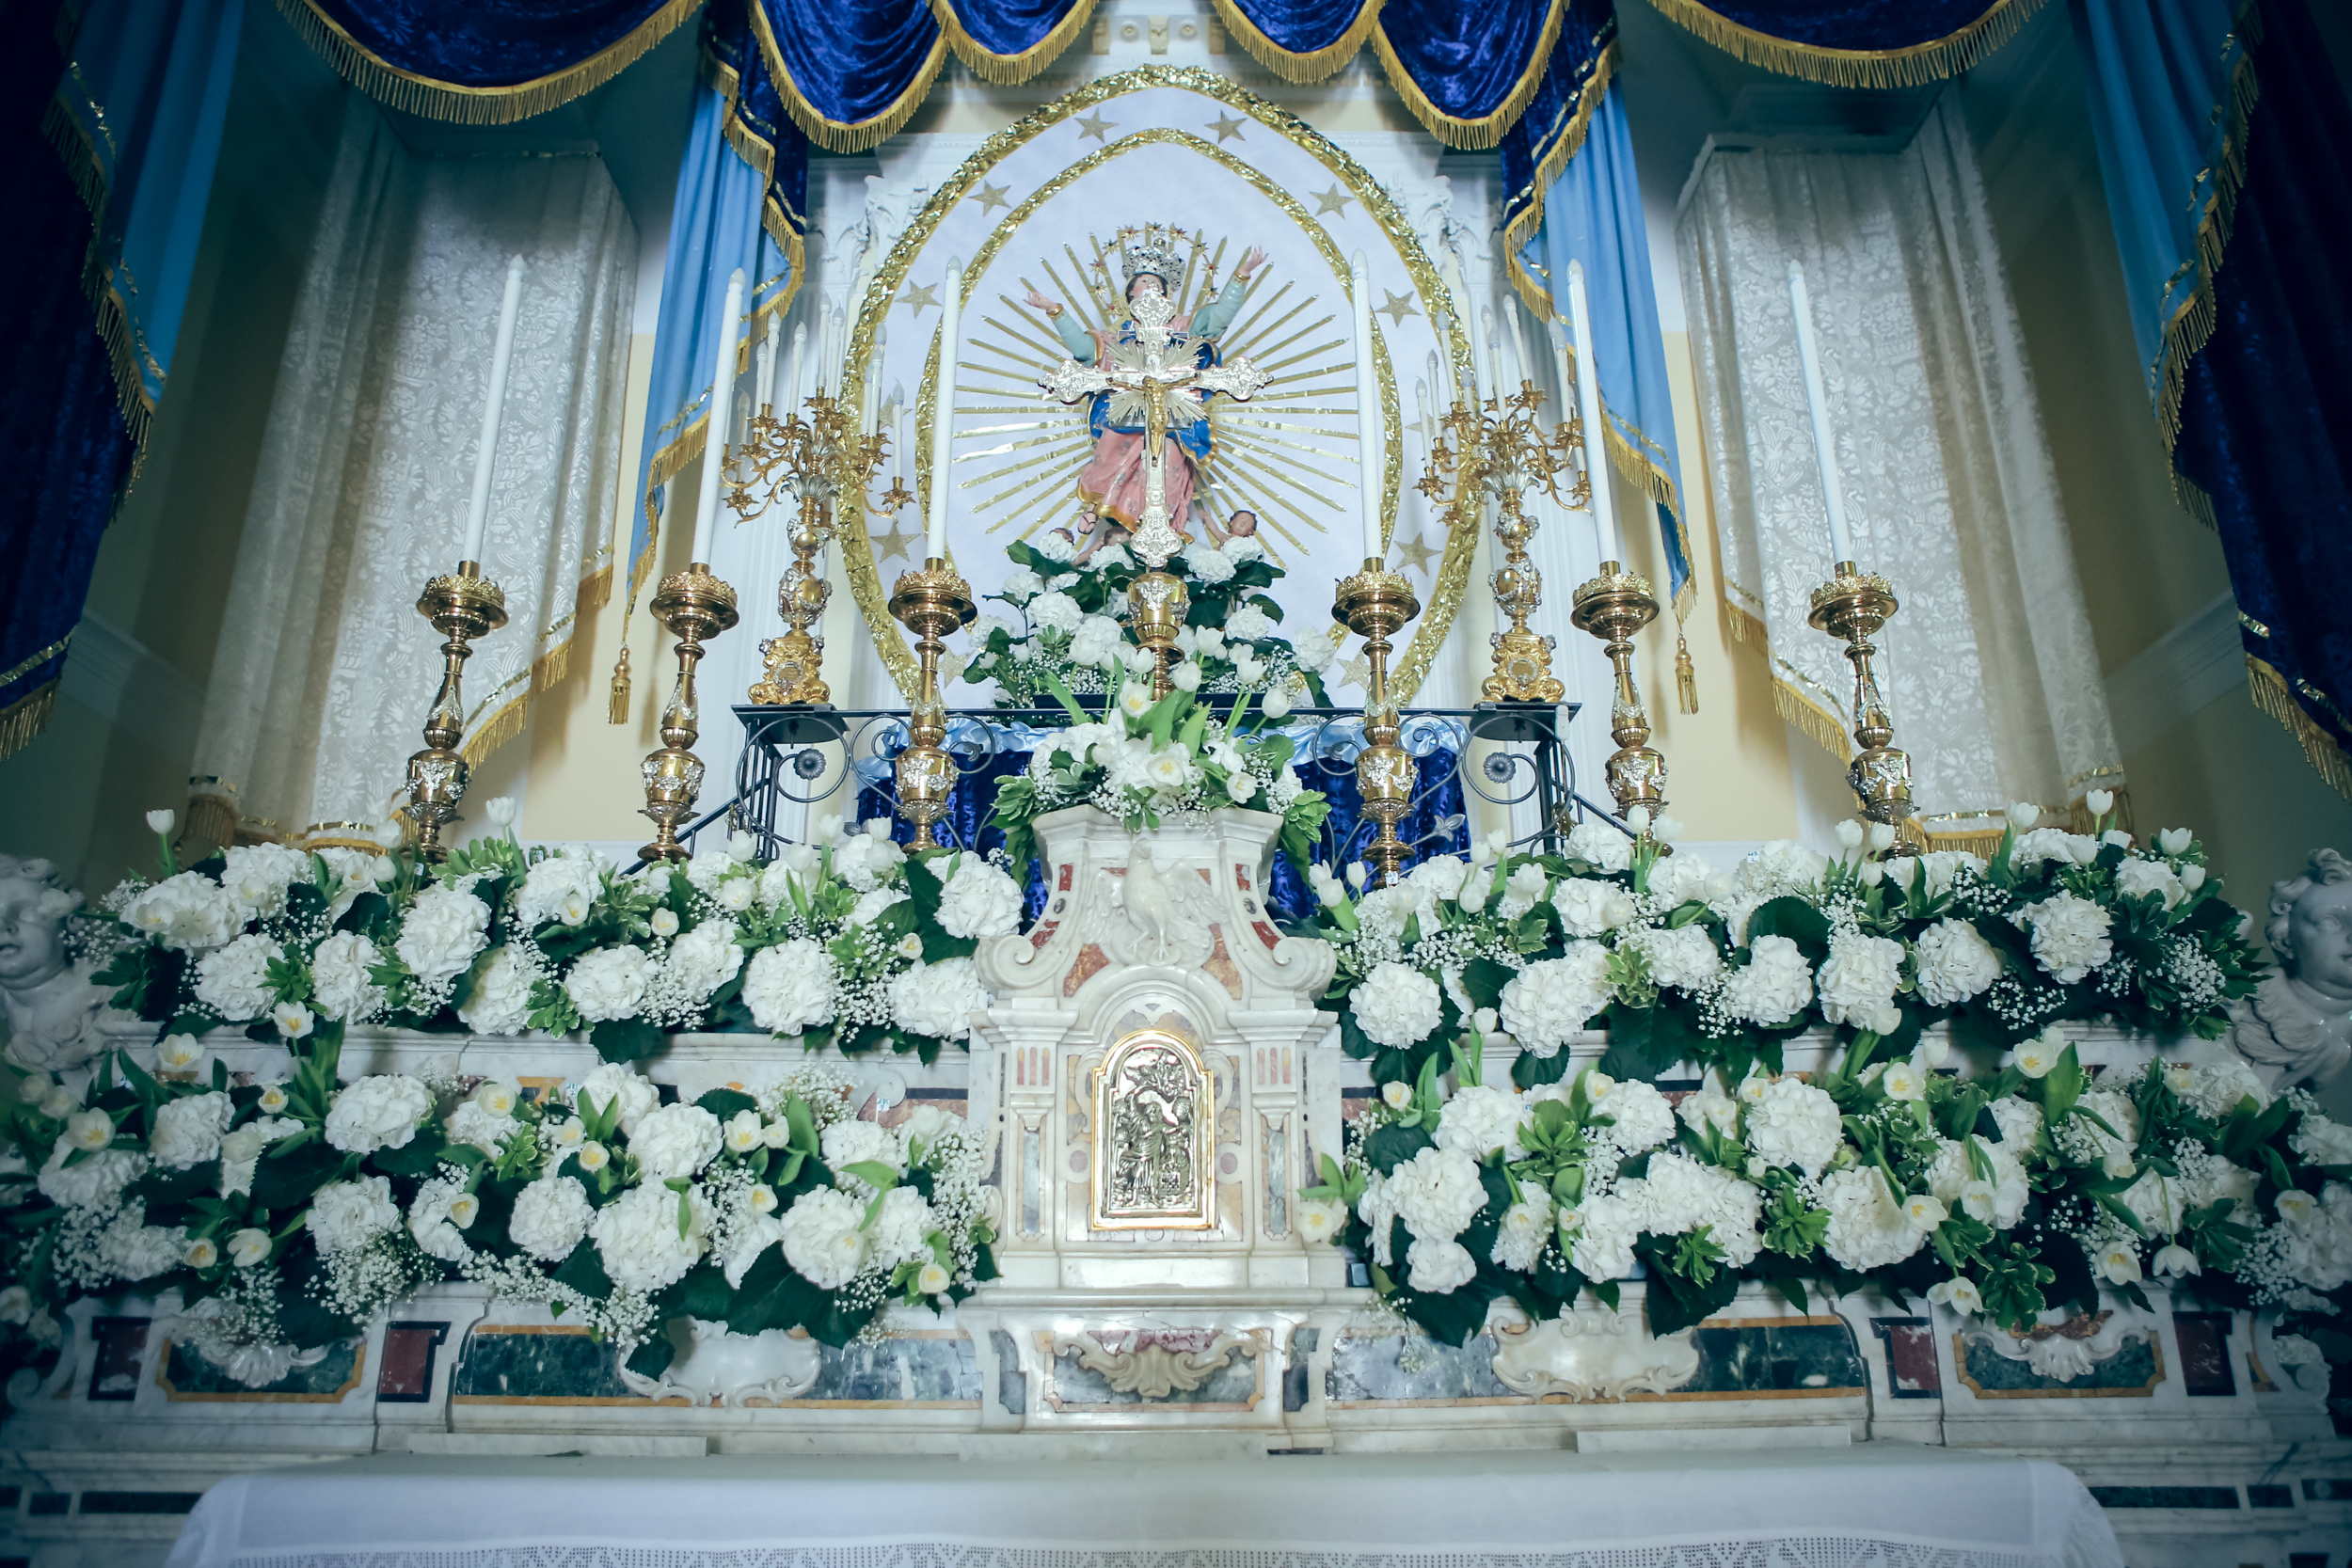 art-of-perfection-event-design-luxury-destination-wedding-planner-italy-white-blue-flower-alter